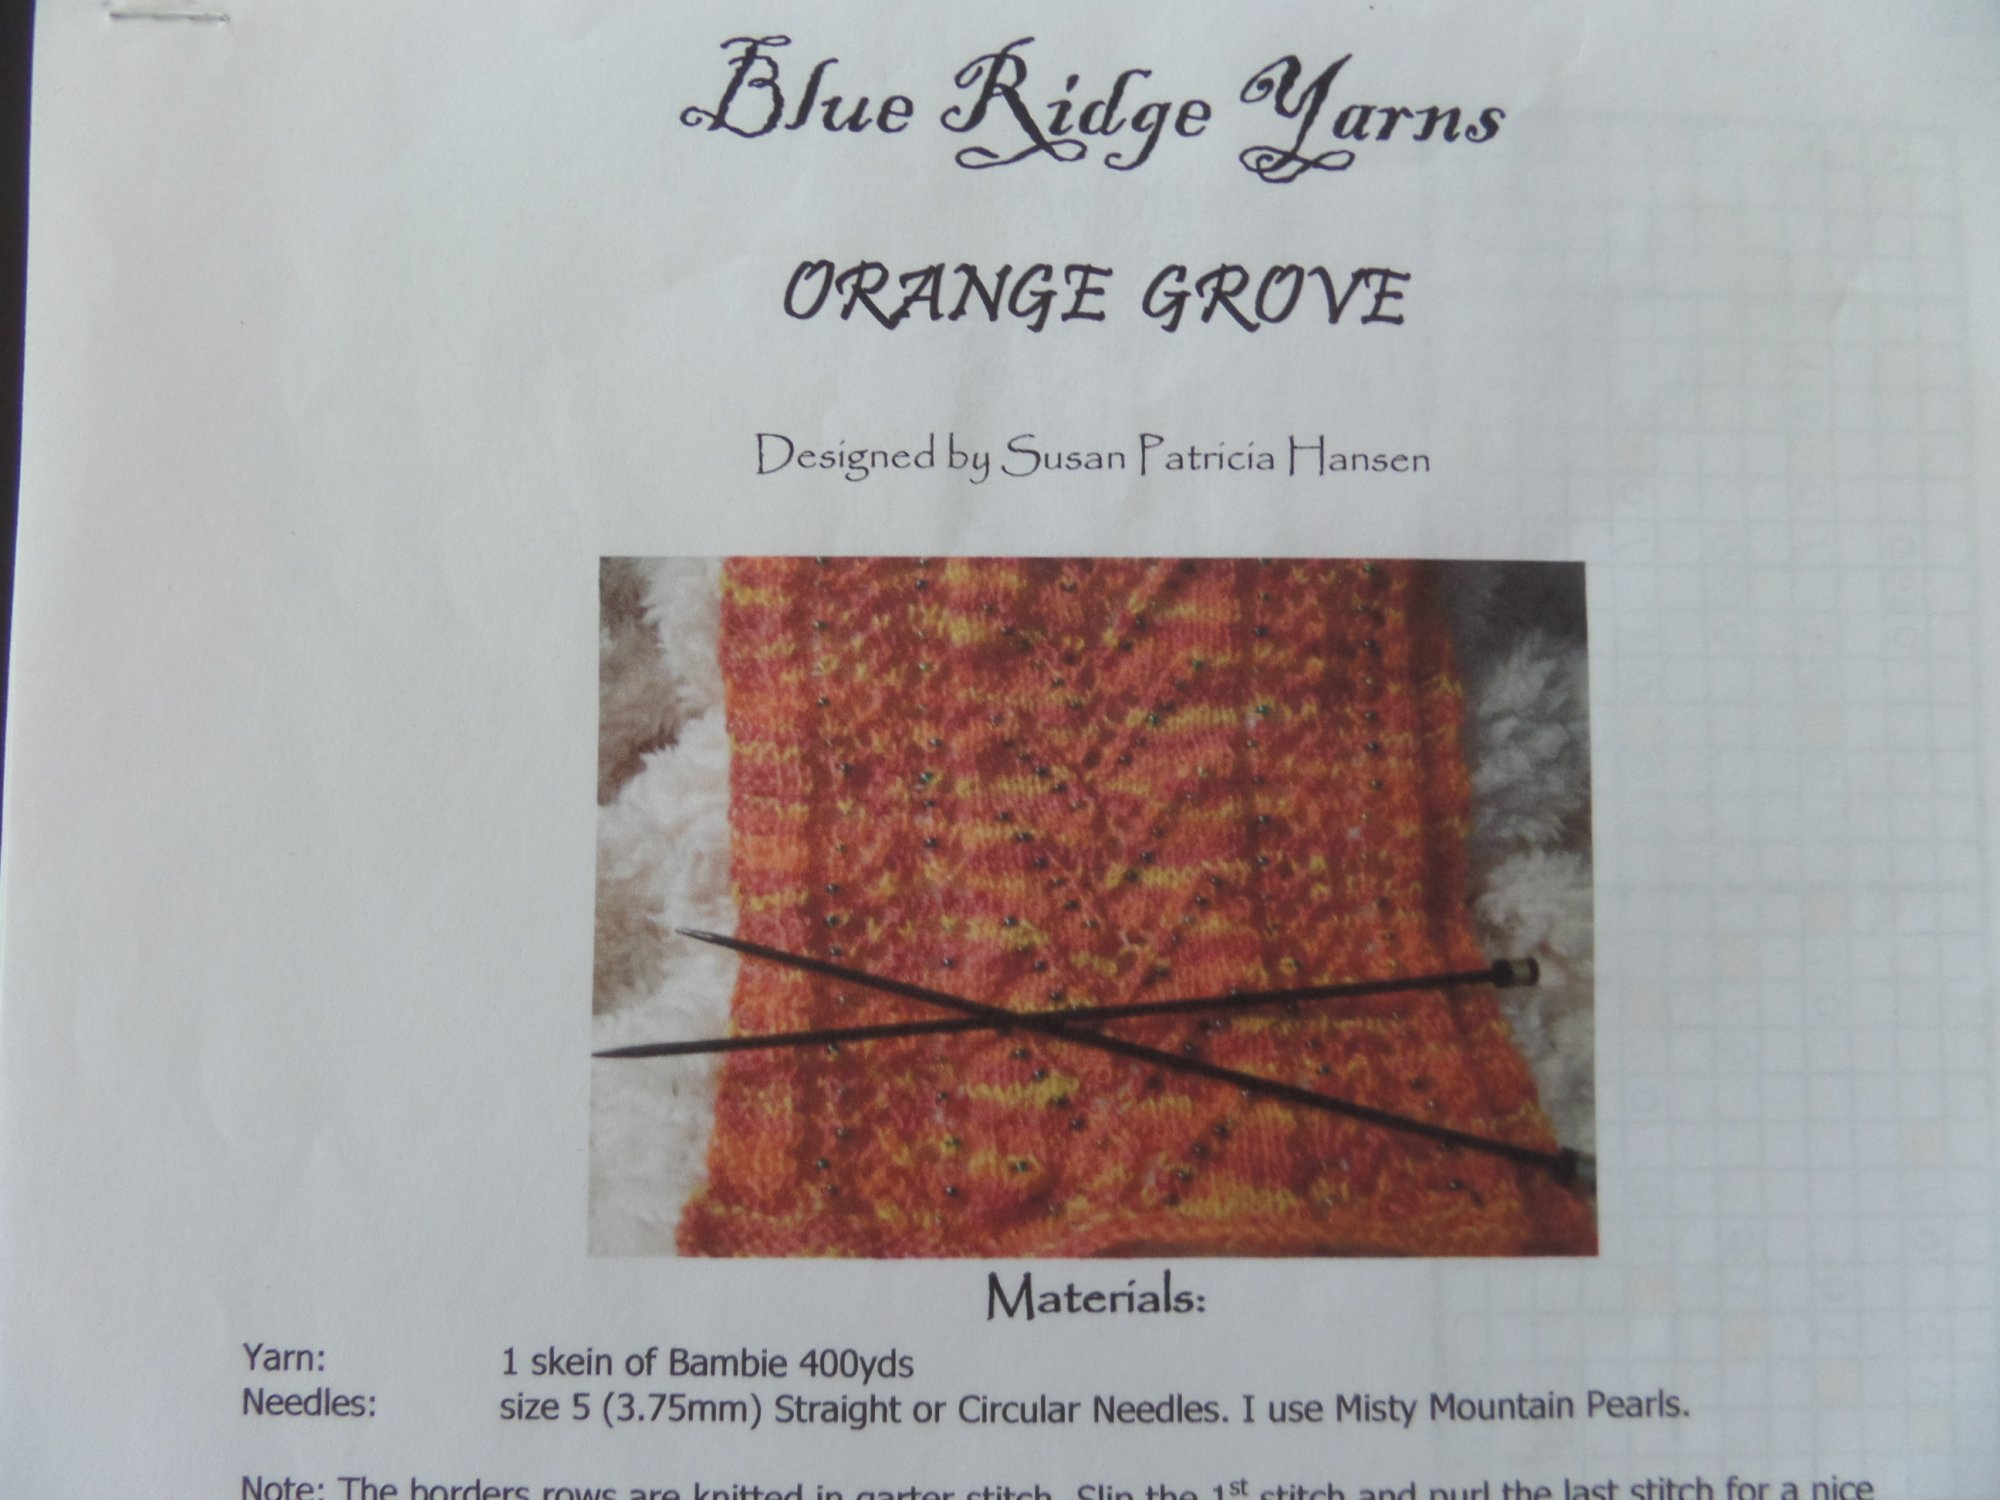 Bambie Patterns from Blue Ridge Yarns